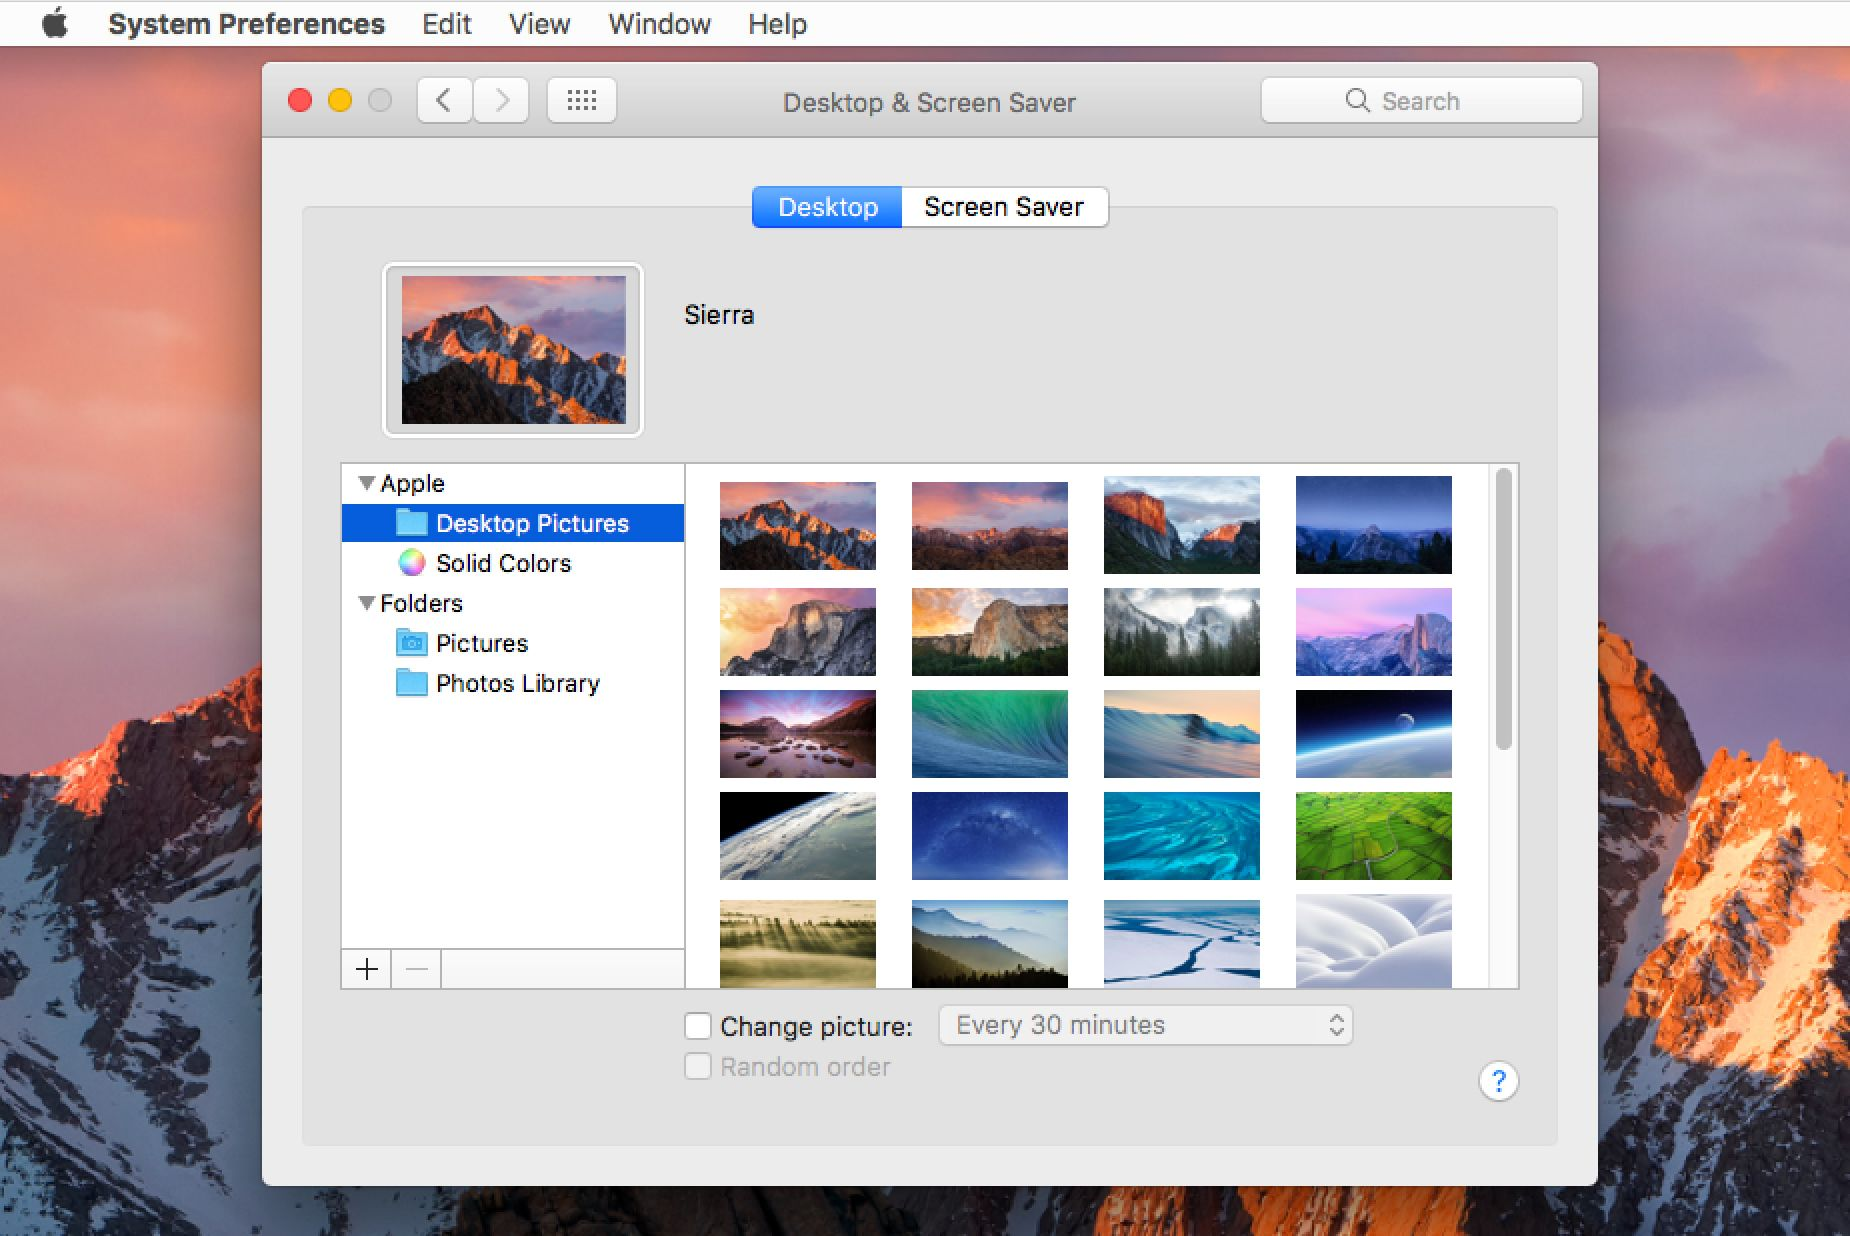 Personalize the Mac's Desktop Wallpaper With Your Own Pictures